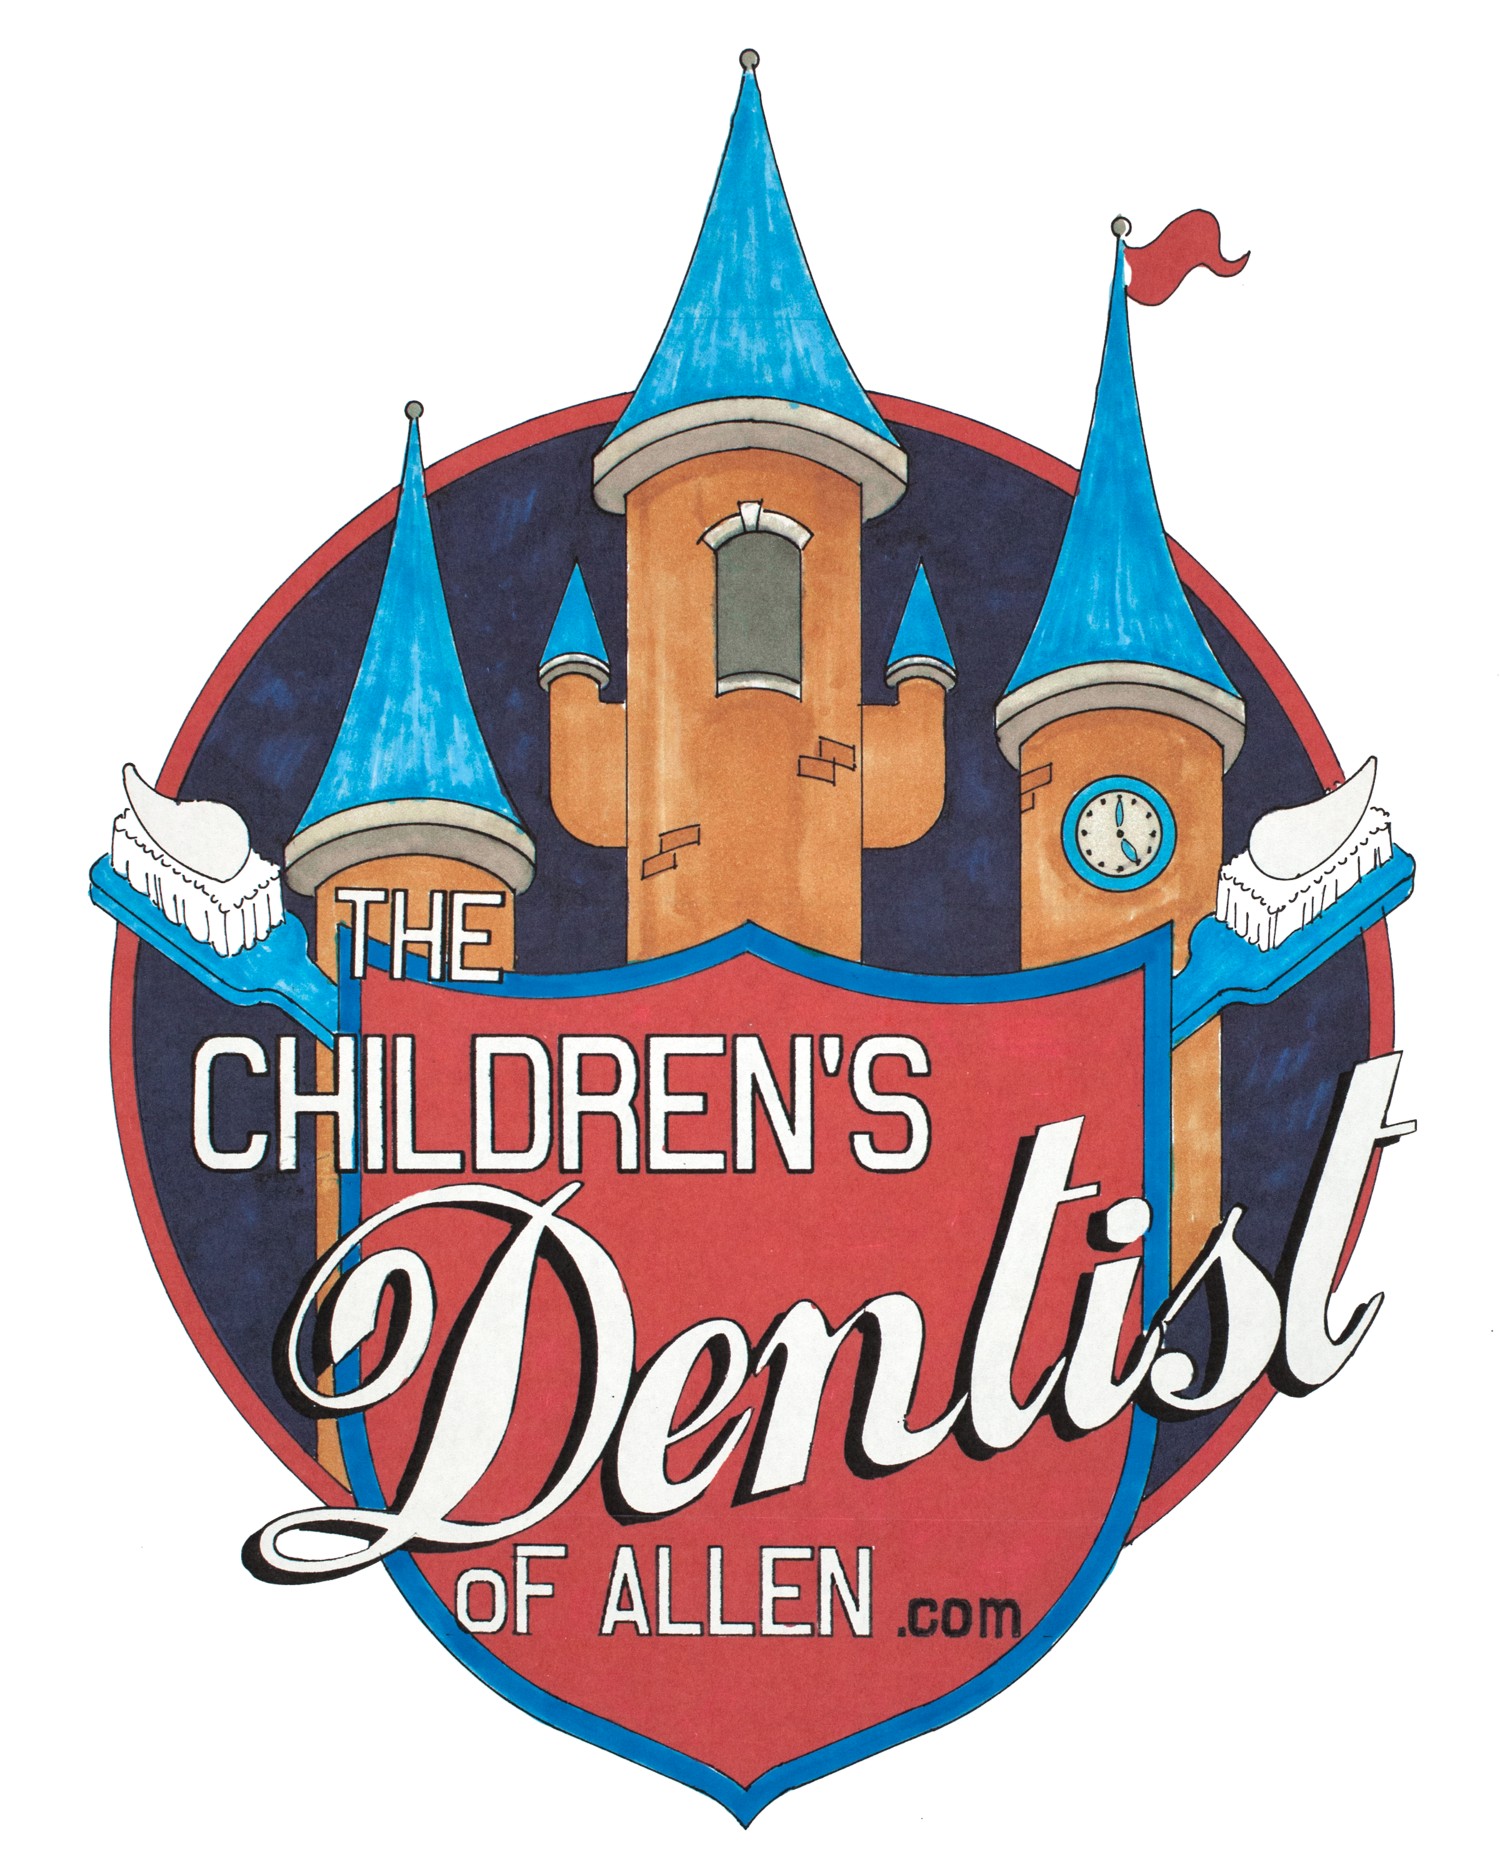 The Children's Dentist of Allen